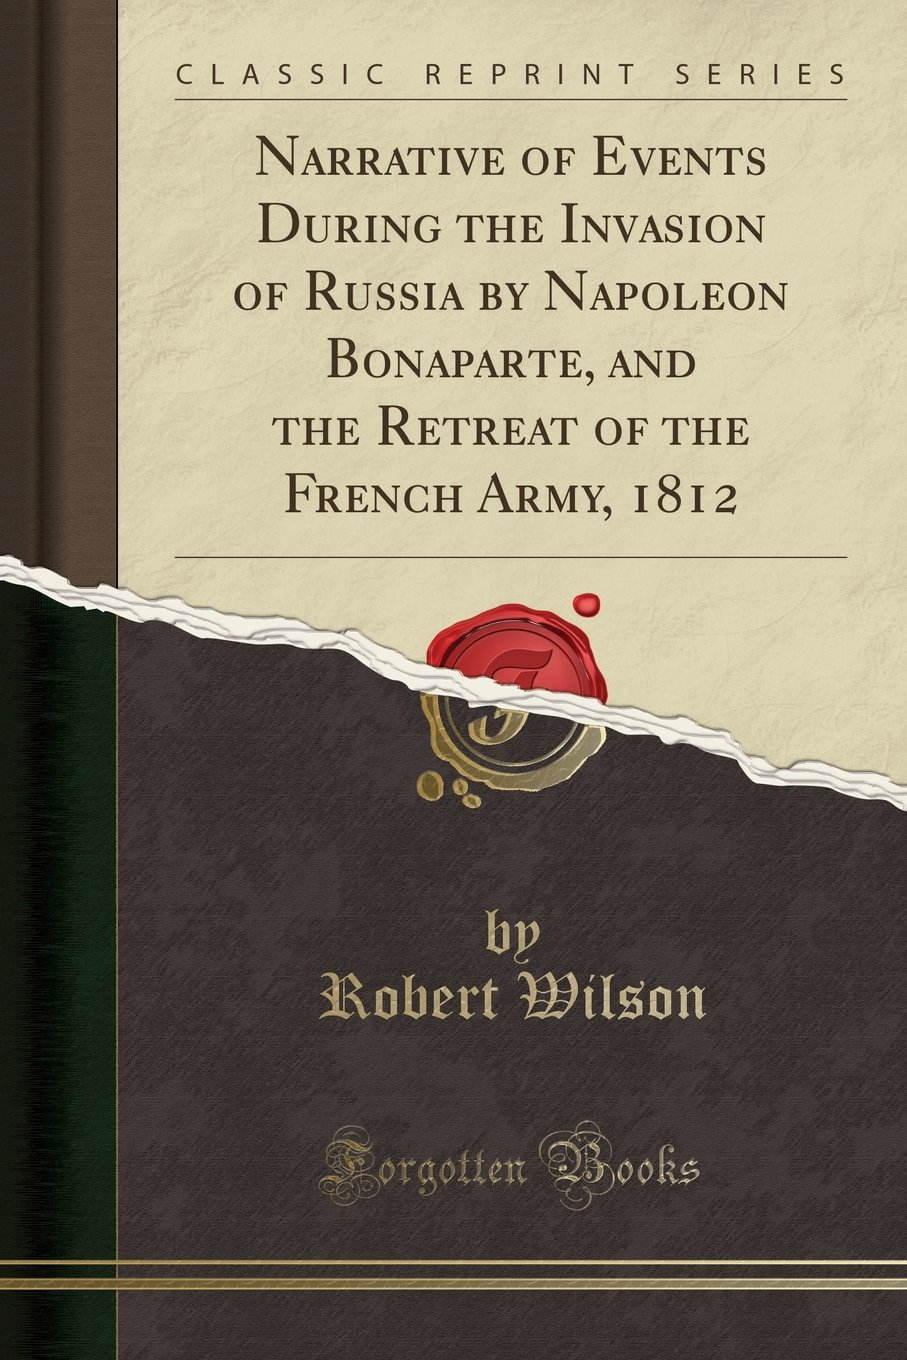 Narrative of Events During the Invasion of Russia by Napoleon Bonaparte,  and the Retreat of the French Army, 1812 (Classic Reprint): Robert Wilson:  ...